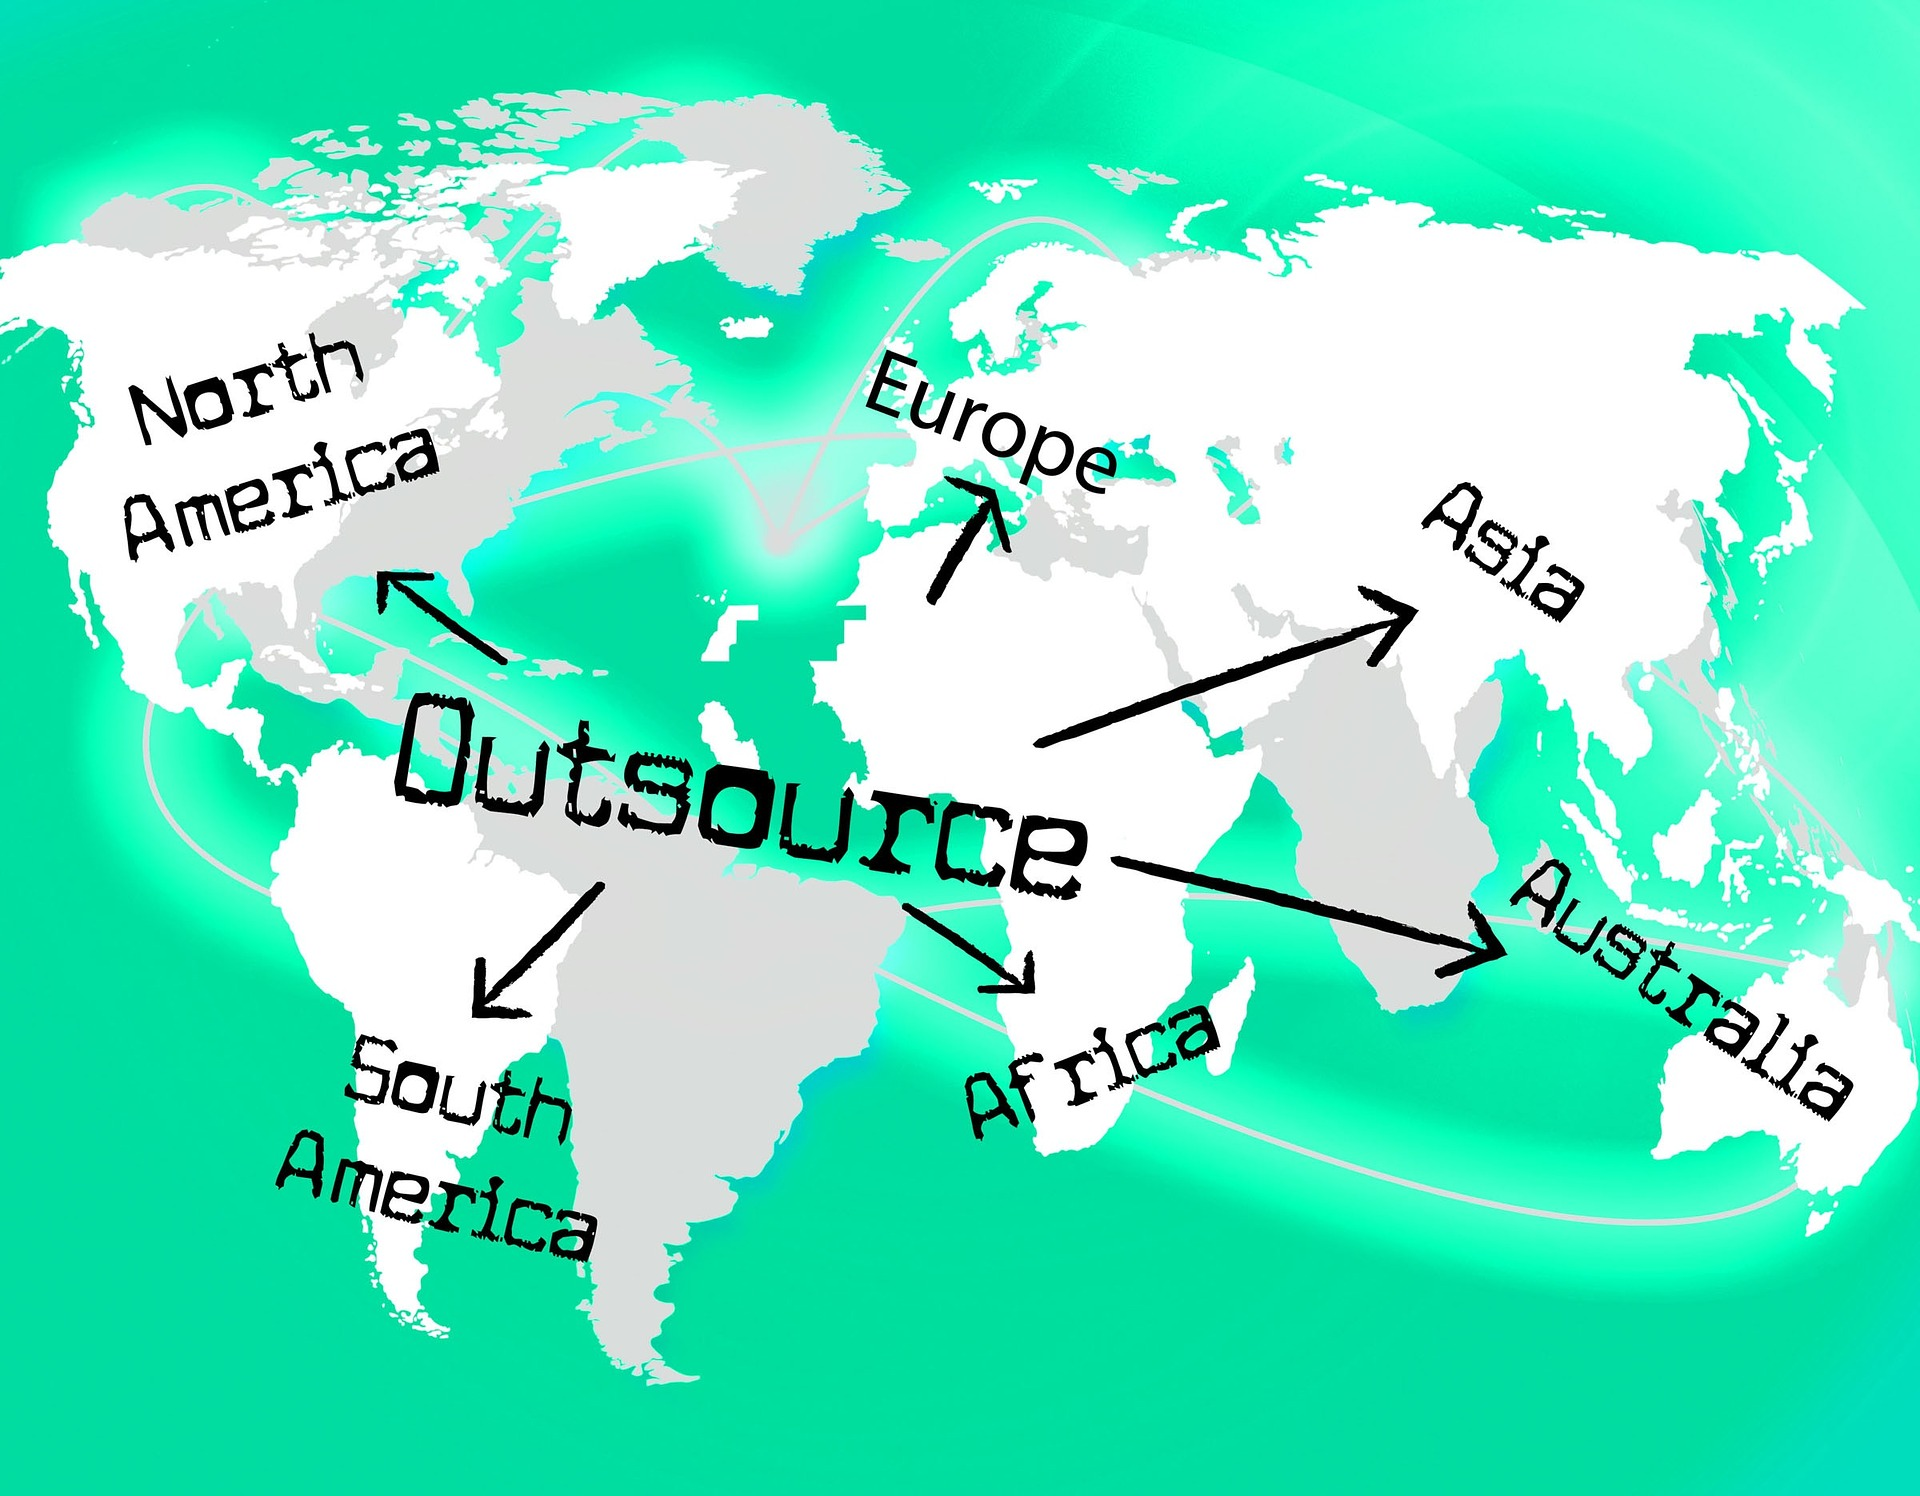 outsource-1345109_1920.jpg